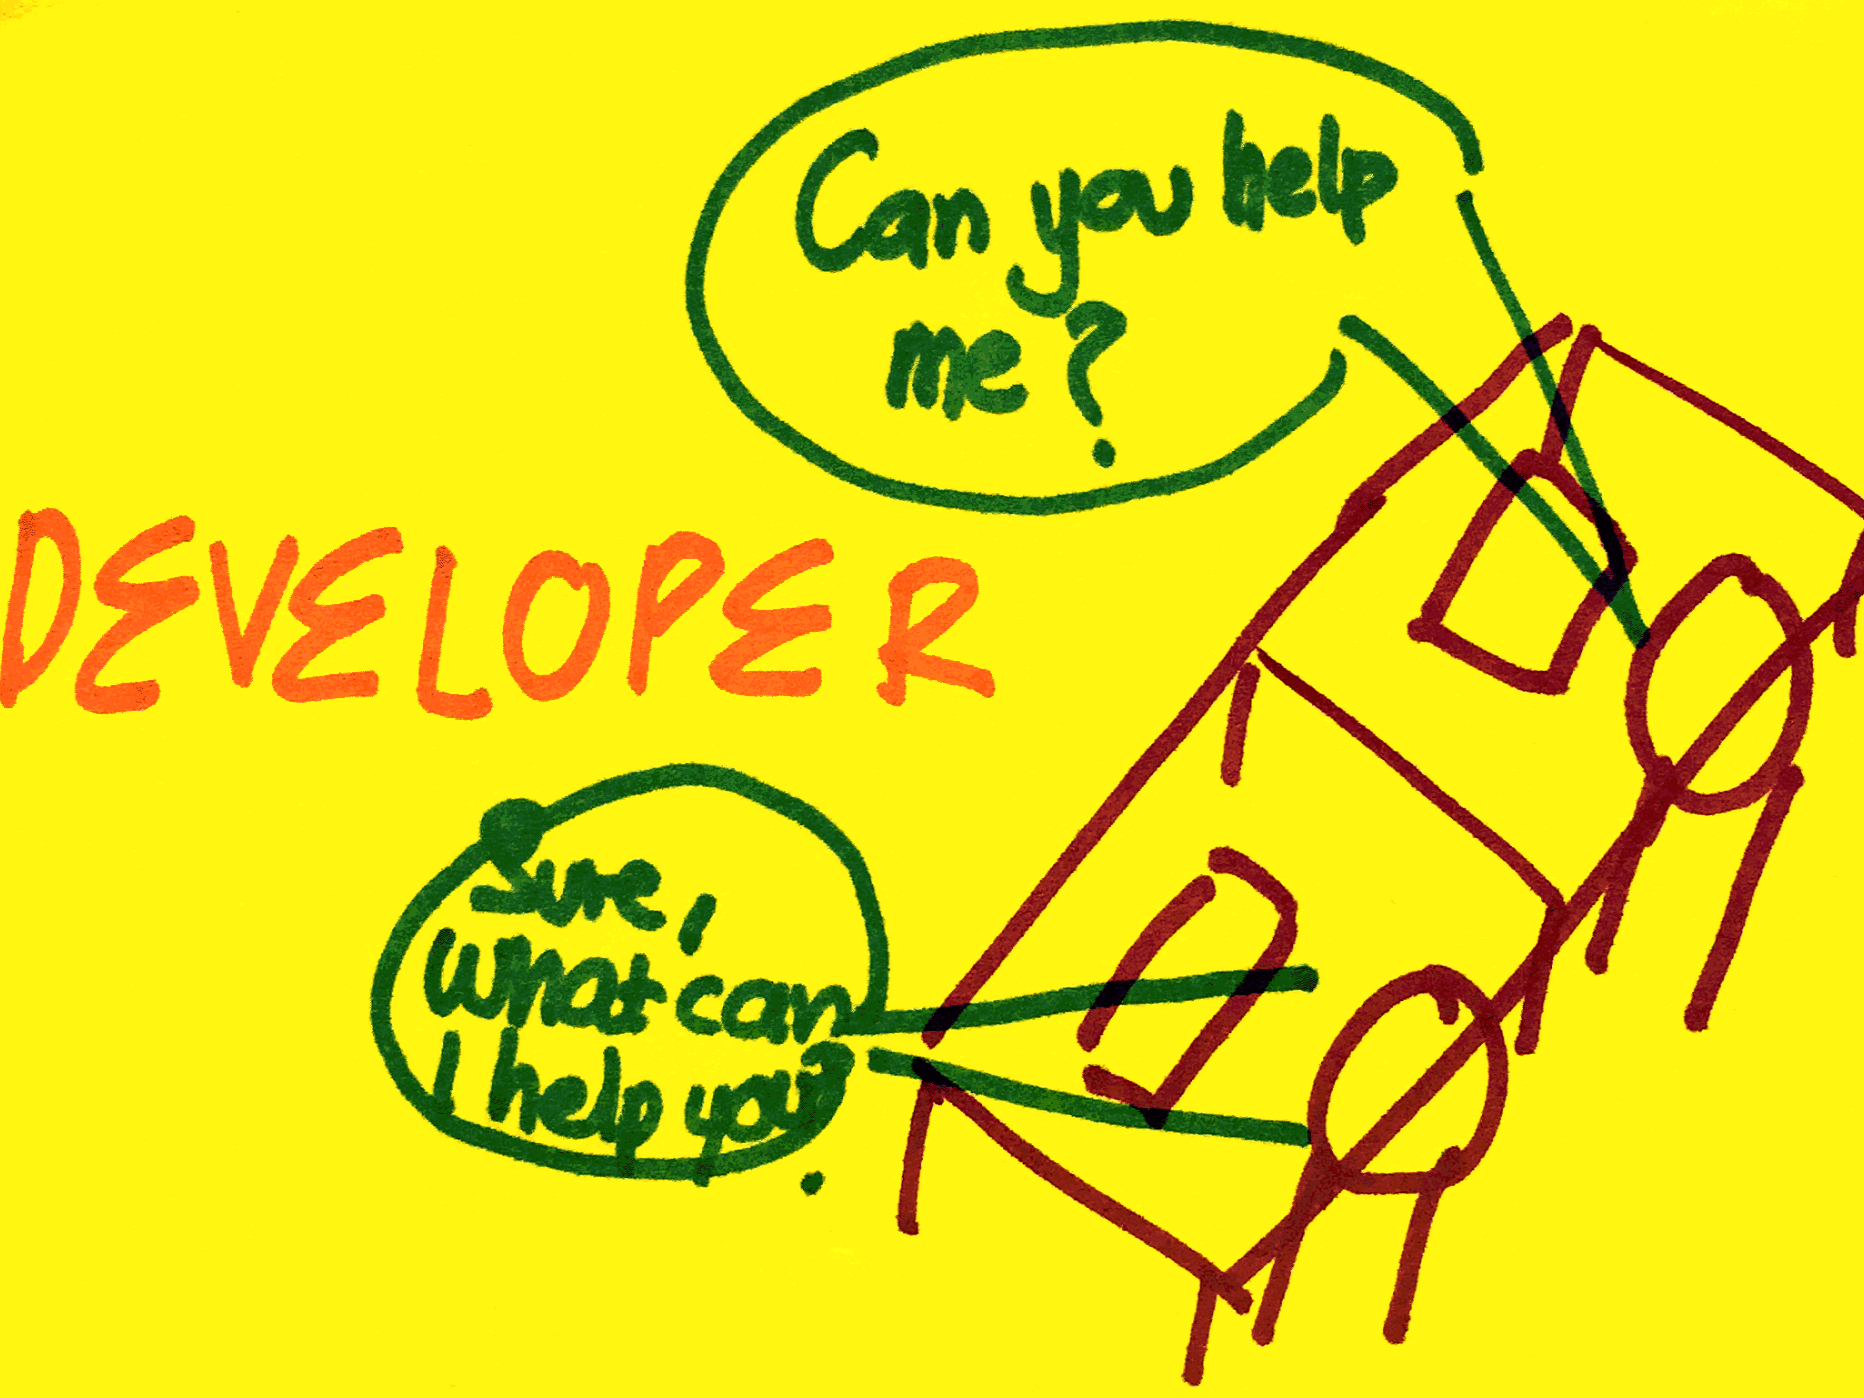 Developer Strengthsfinder Singapore Helping One Another